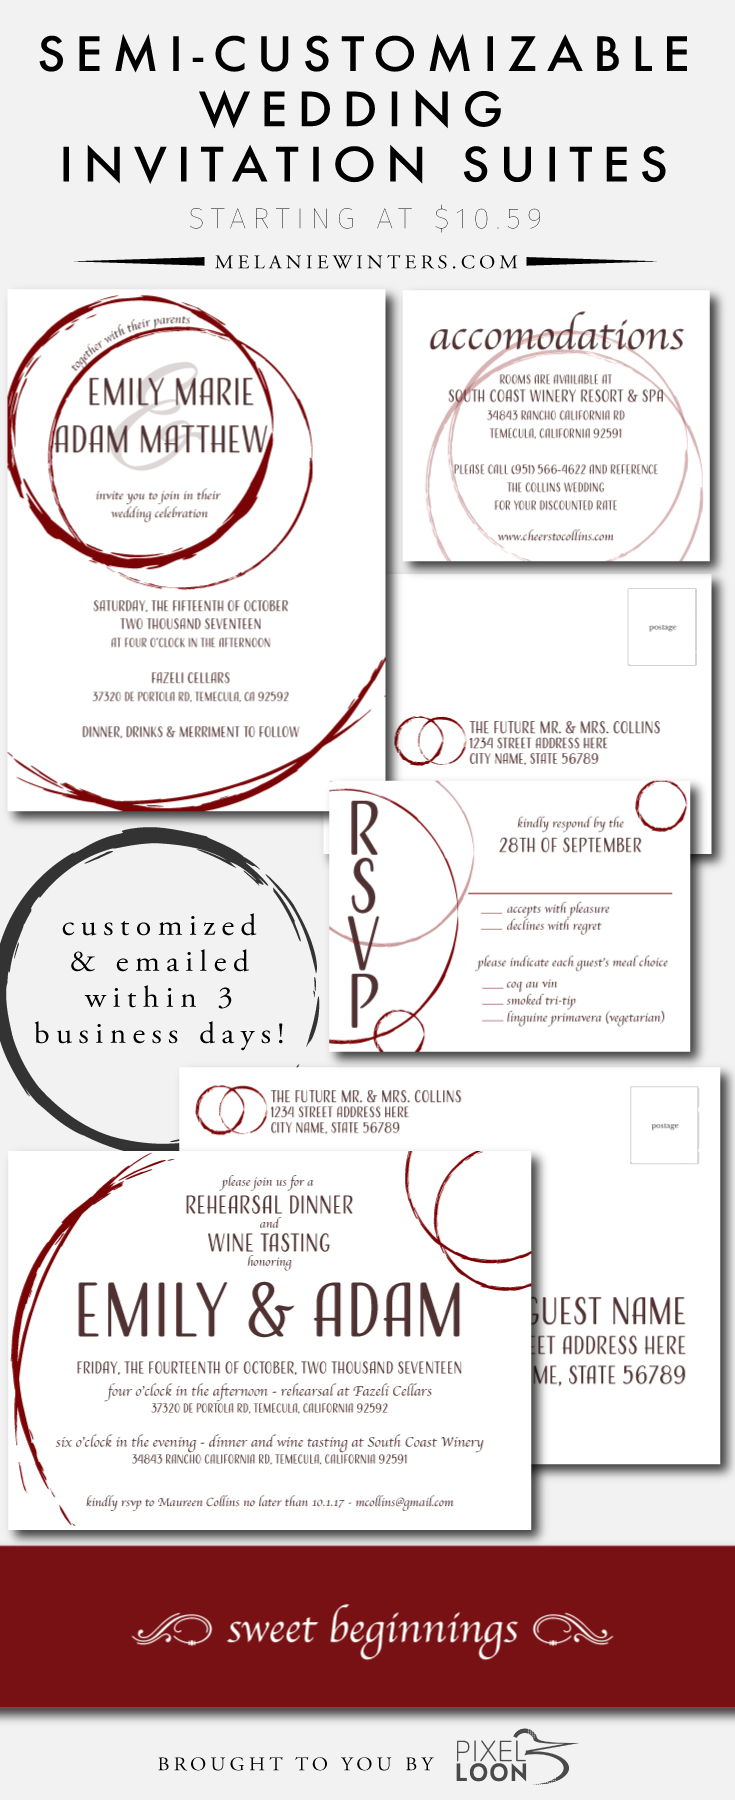 Pixel Loon is now offering semi-customizable invitation suites via melaniewinters.com! Print-ready files in just 3 business days and at a cost that can't be beat.